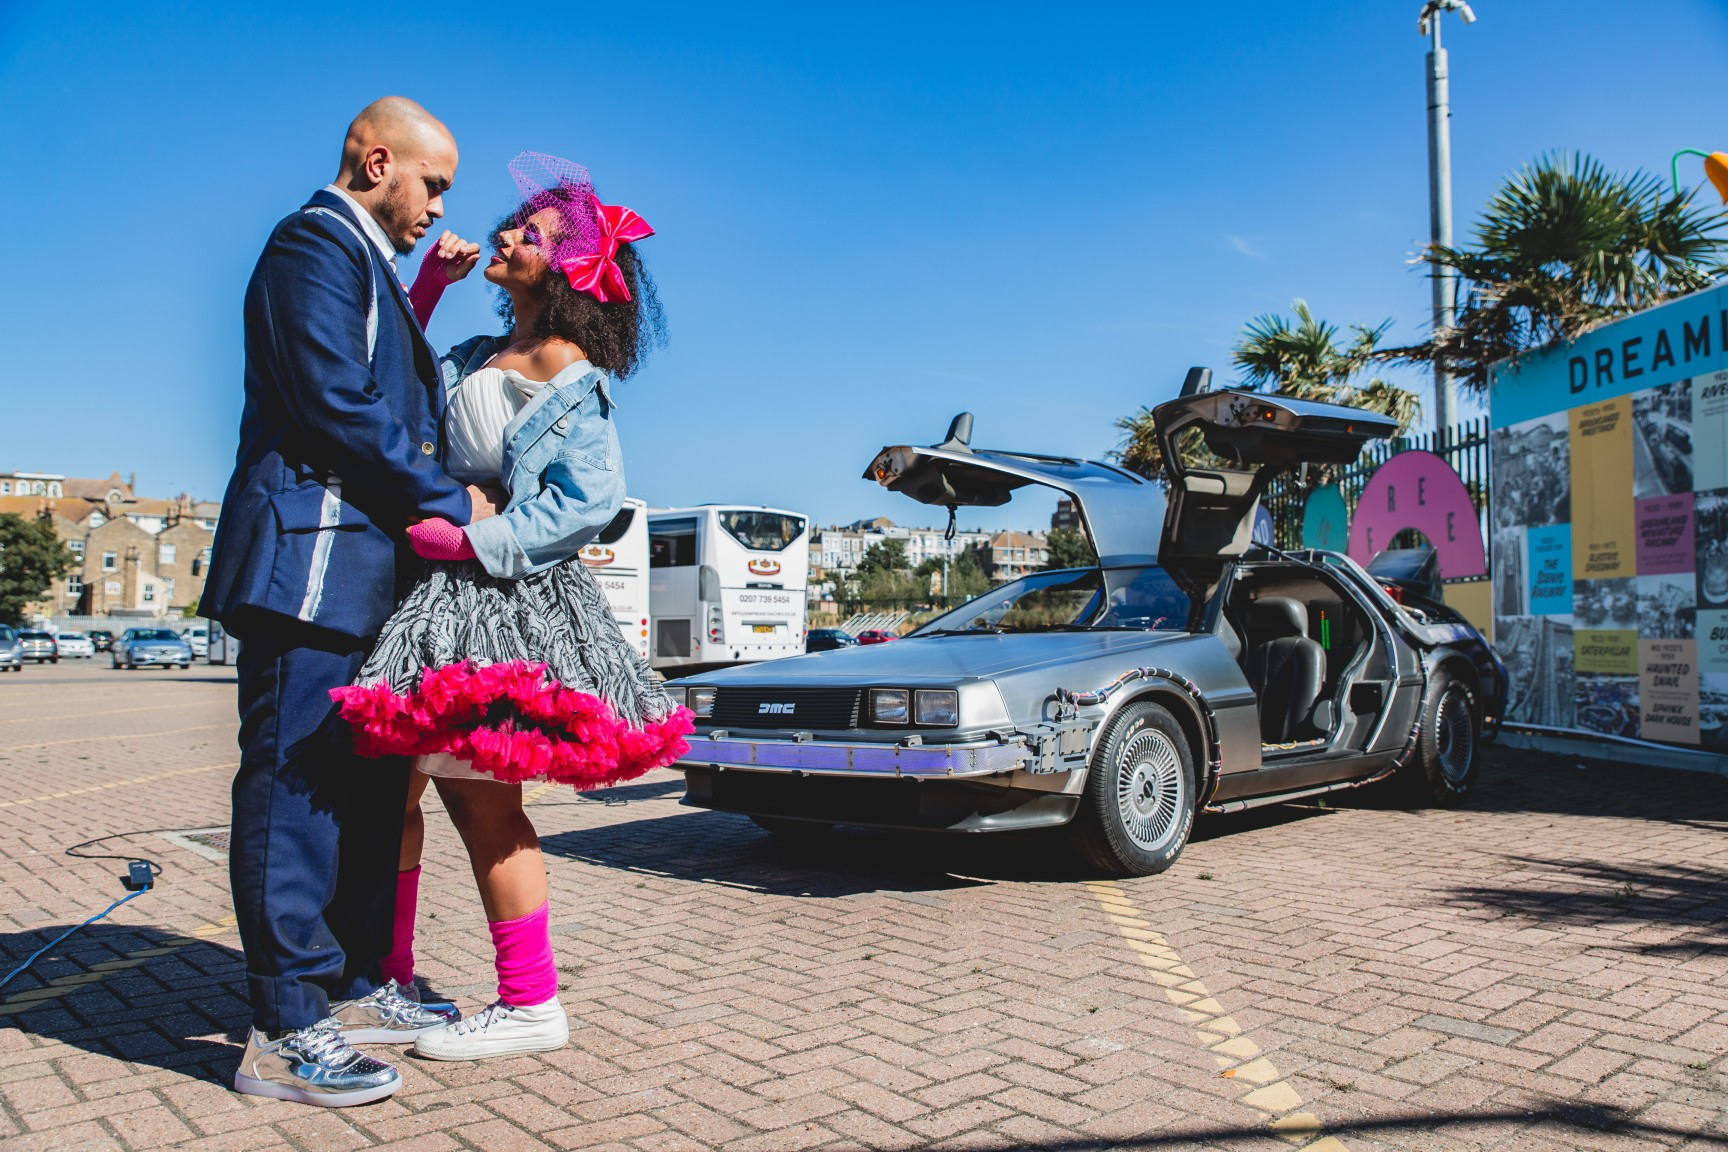 back to the future wedding - delorean car hire - retro wedding - themed wedding - 80s themed wedding